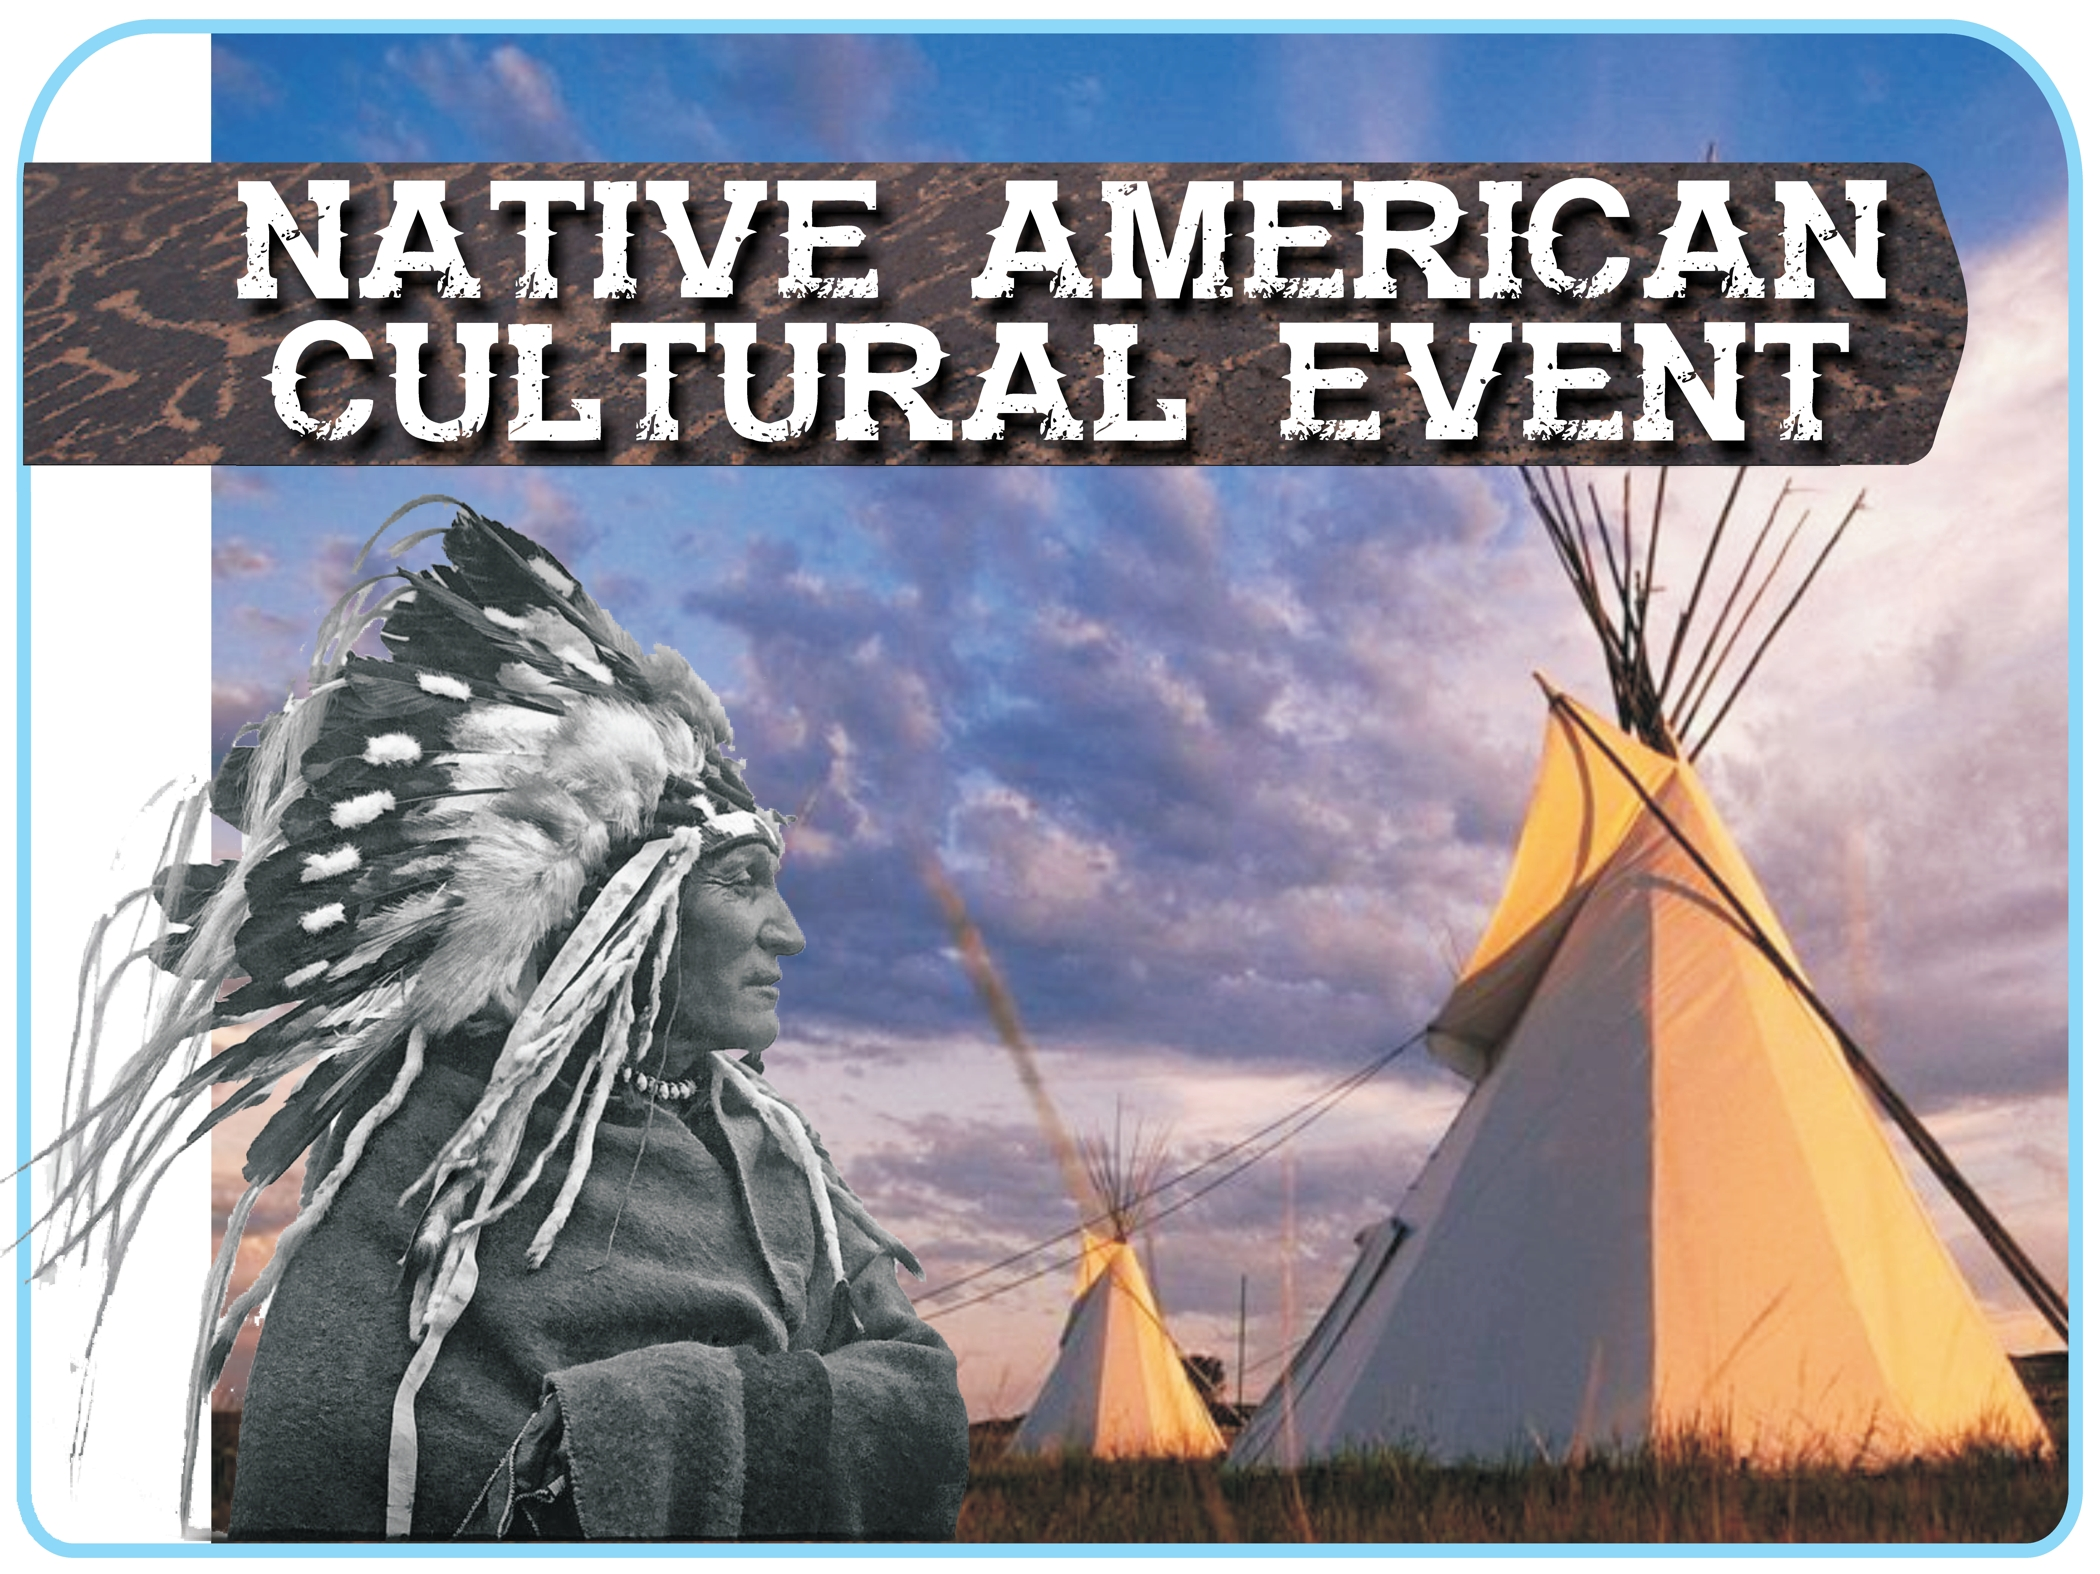 Native 20american 20cultural 20event 20  20august 202015  20texas 20zoo